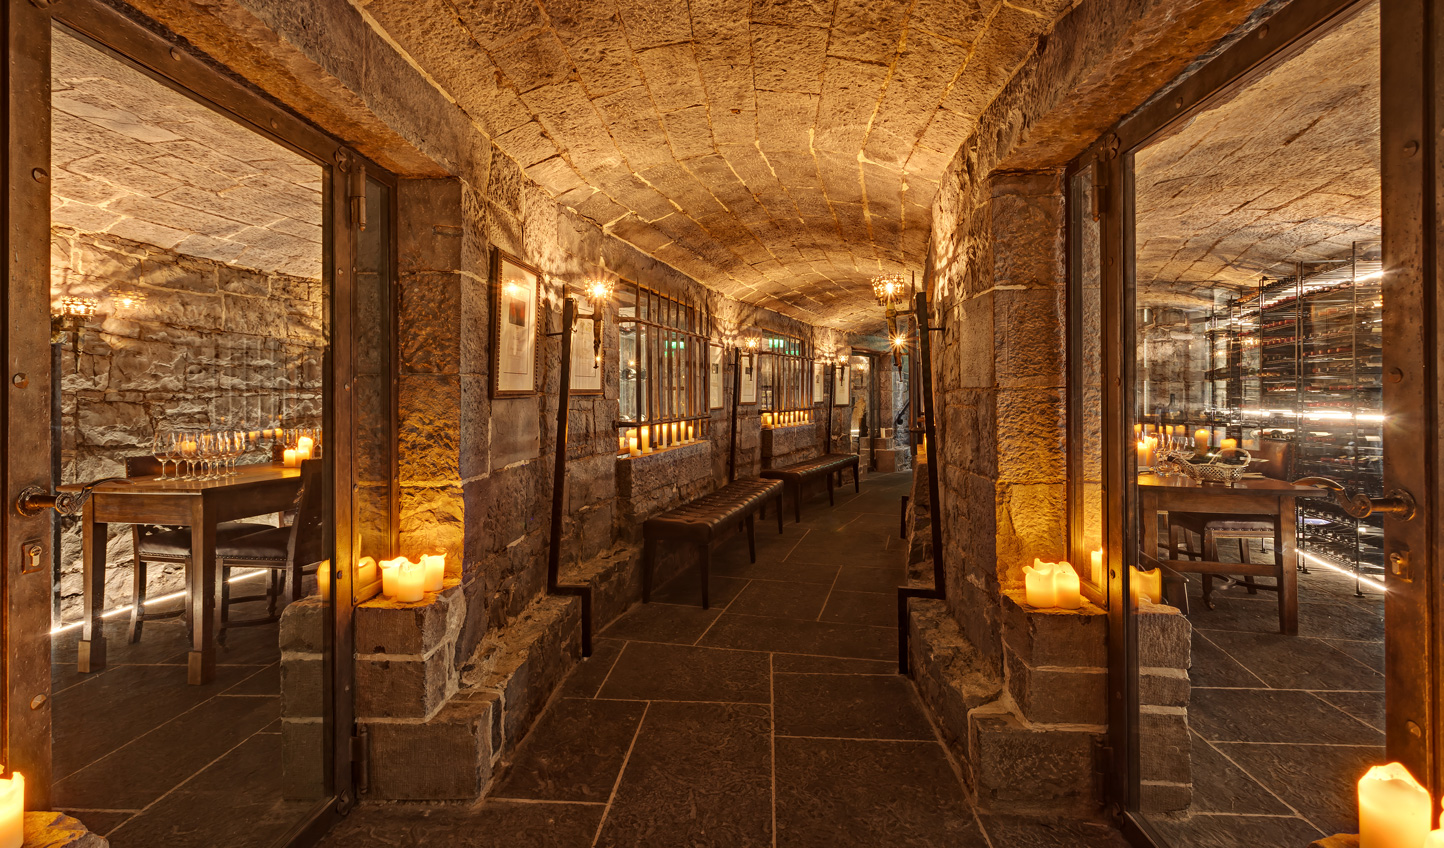 After dinner explore the wine cellars by candlelight